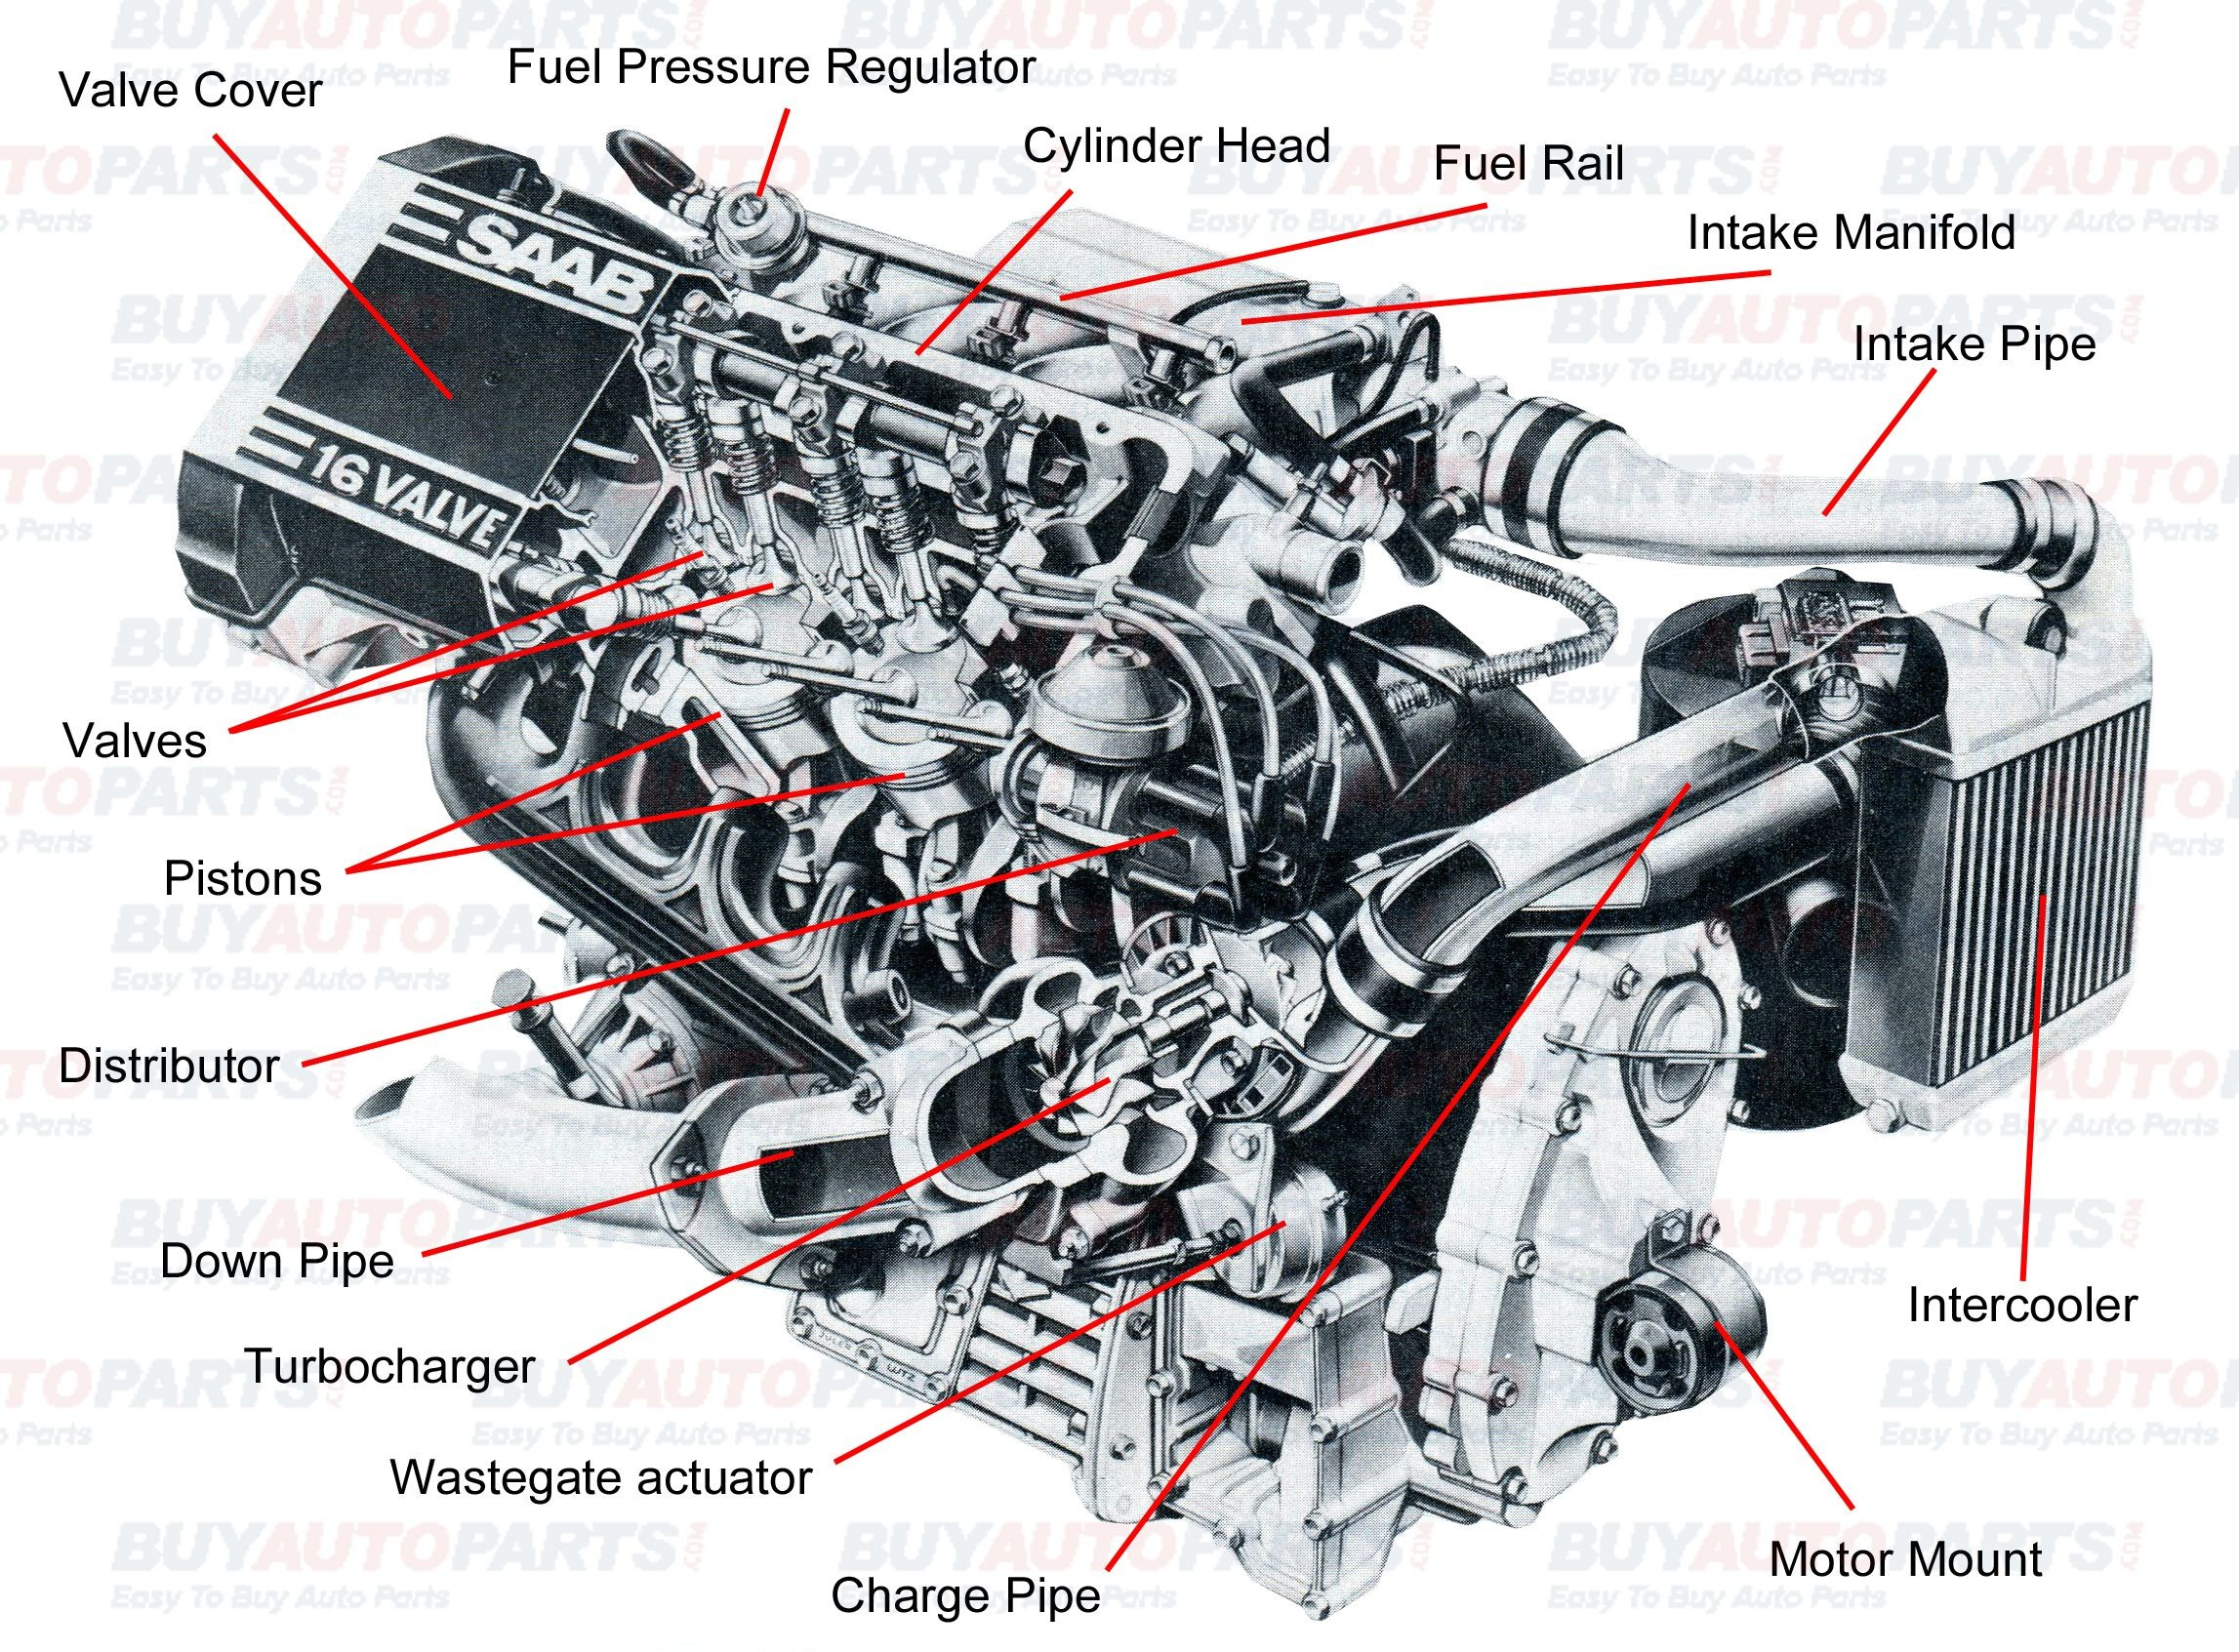 Automobile Parts Diagram Pin by Jimmiejanet Testellamwfz On What Does An Engine with Turbo Of Automobile Parts Diagram 30 Honda Xr100 Parts – Car Parts List with